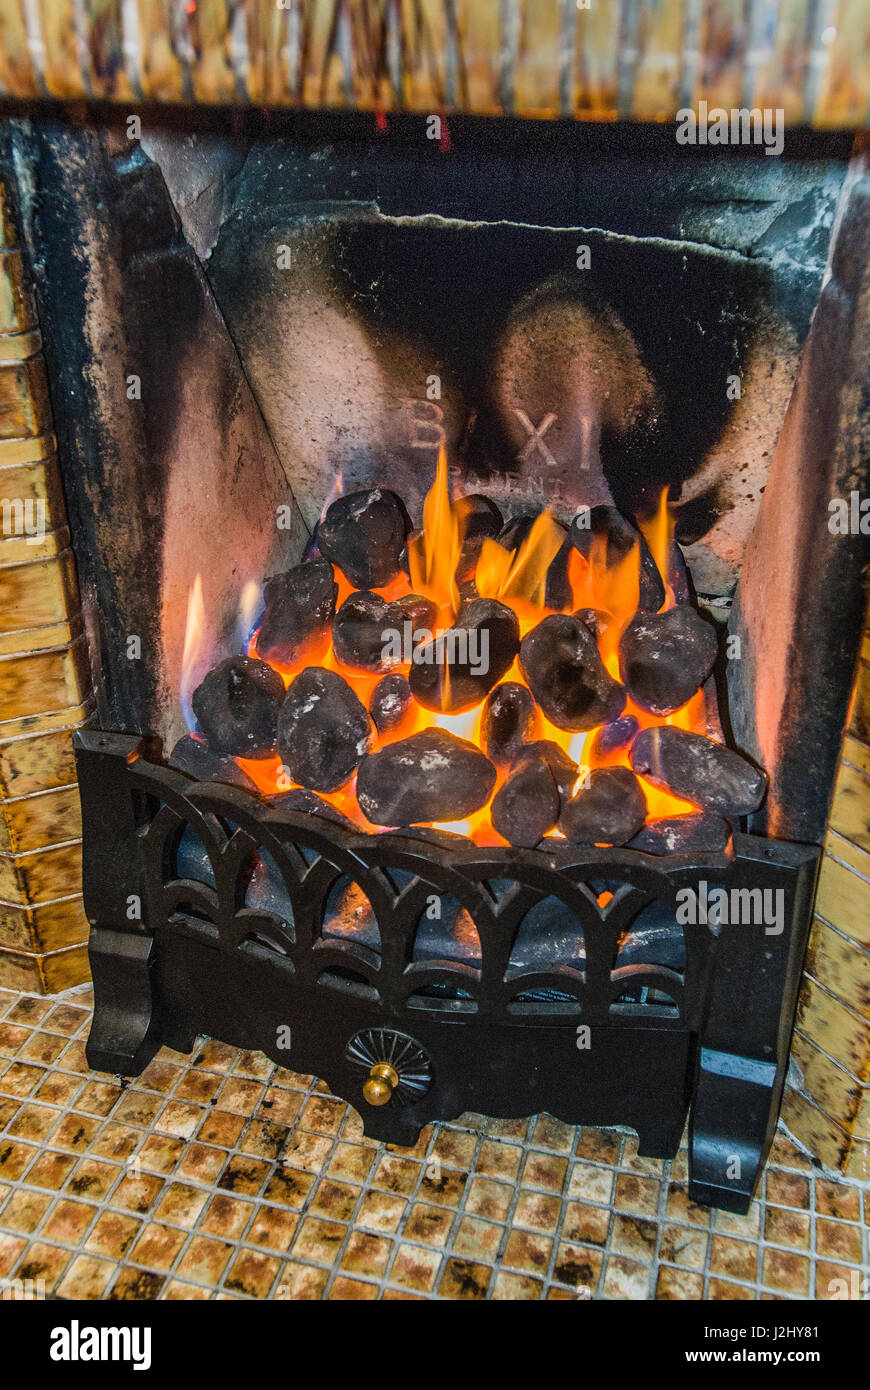 coal effect gas fire stock photo royalty free image 139306833